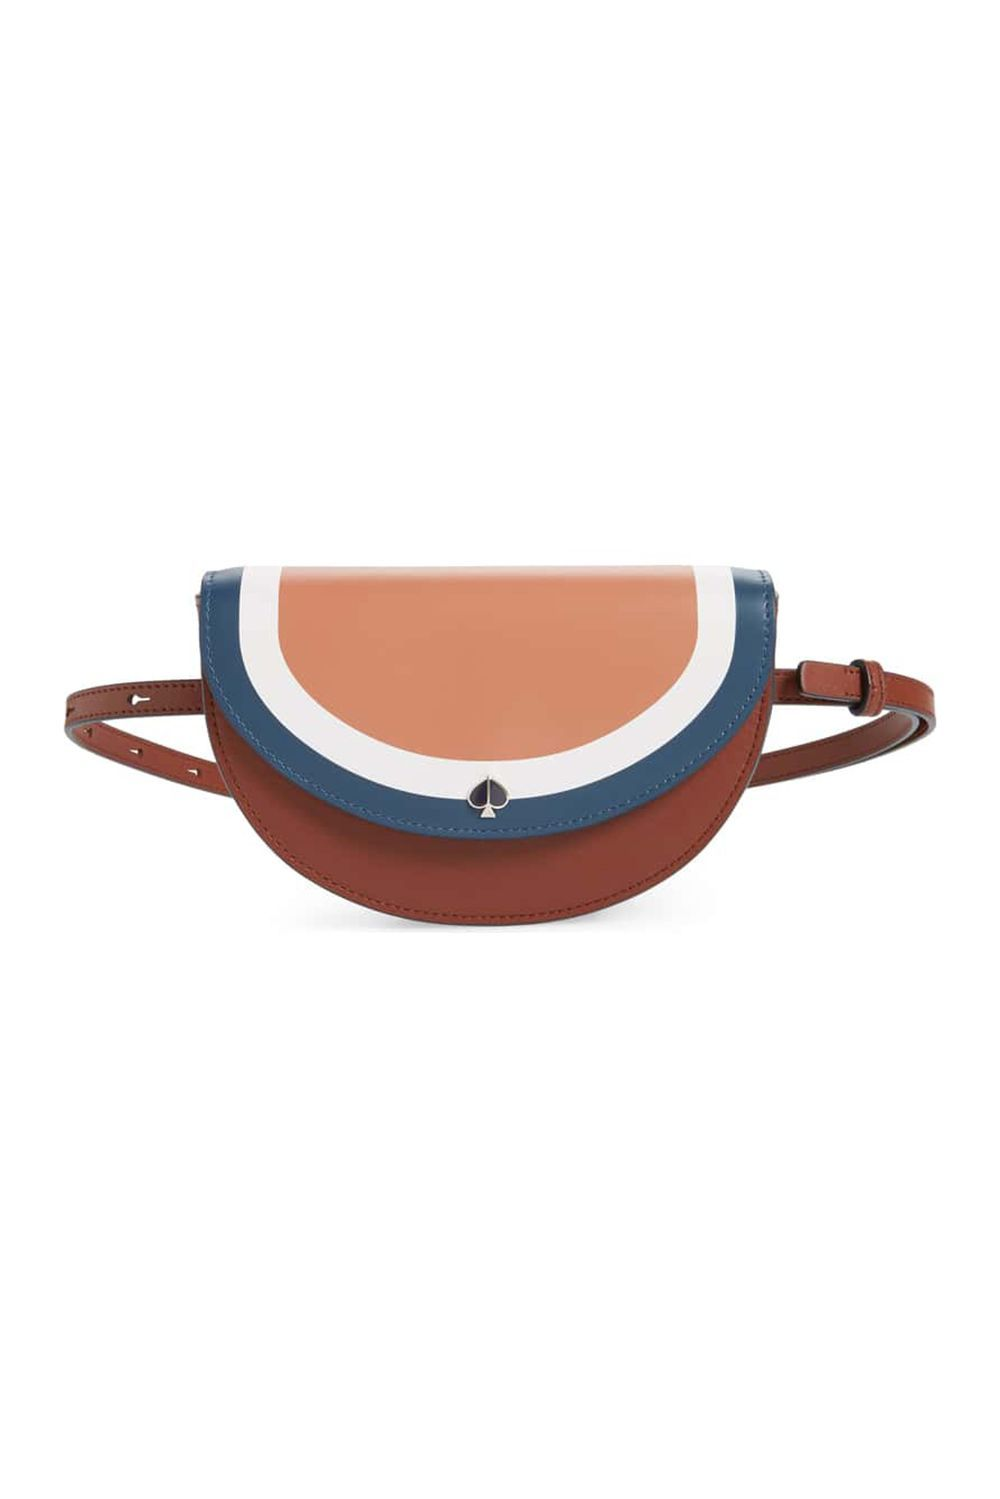 05f62b5f469a7 The Best Fanny Packs for 2019 - Cute Fanny Packs for Women